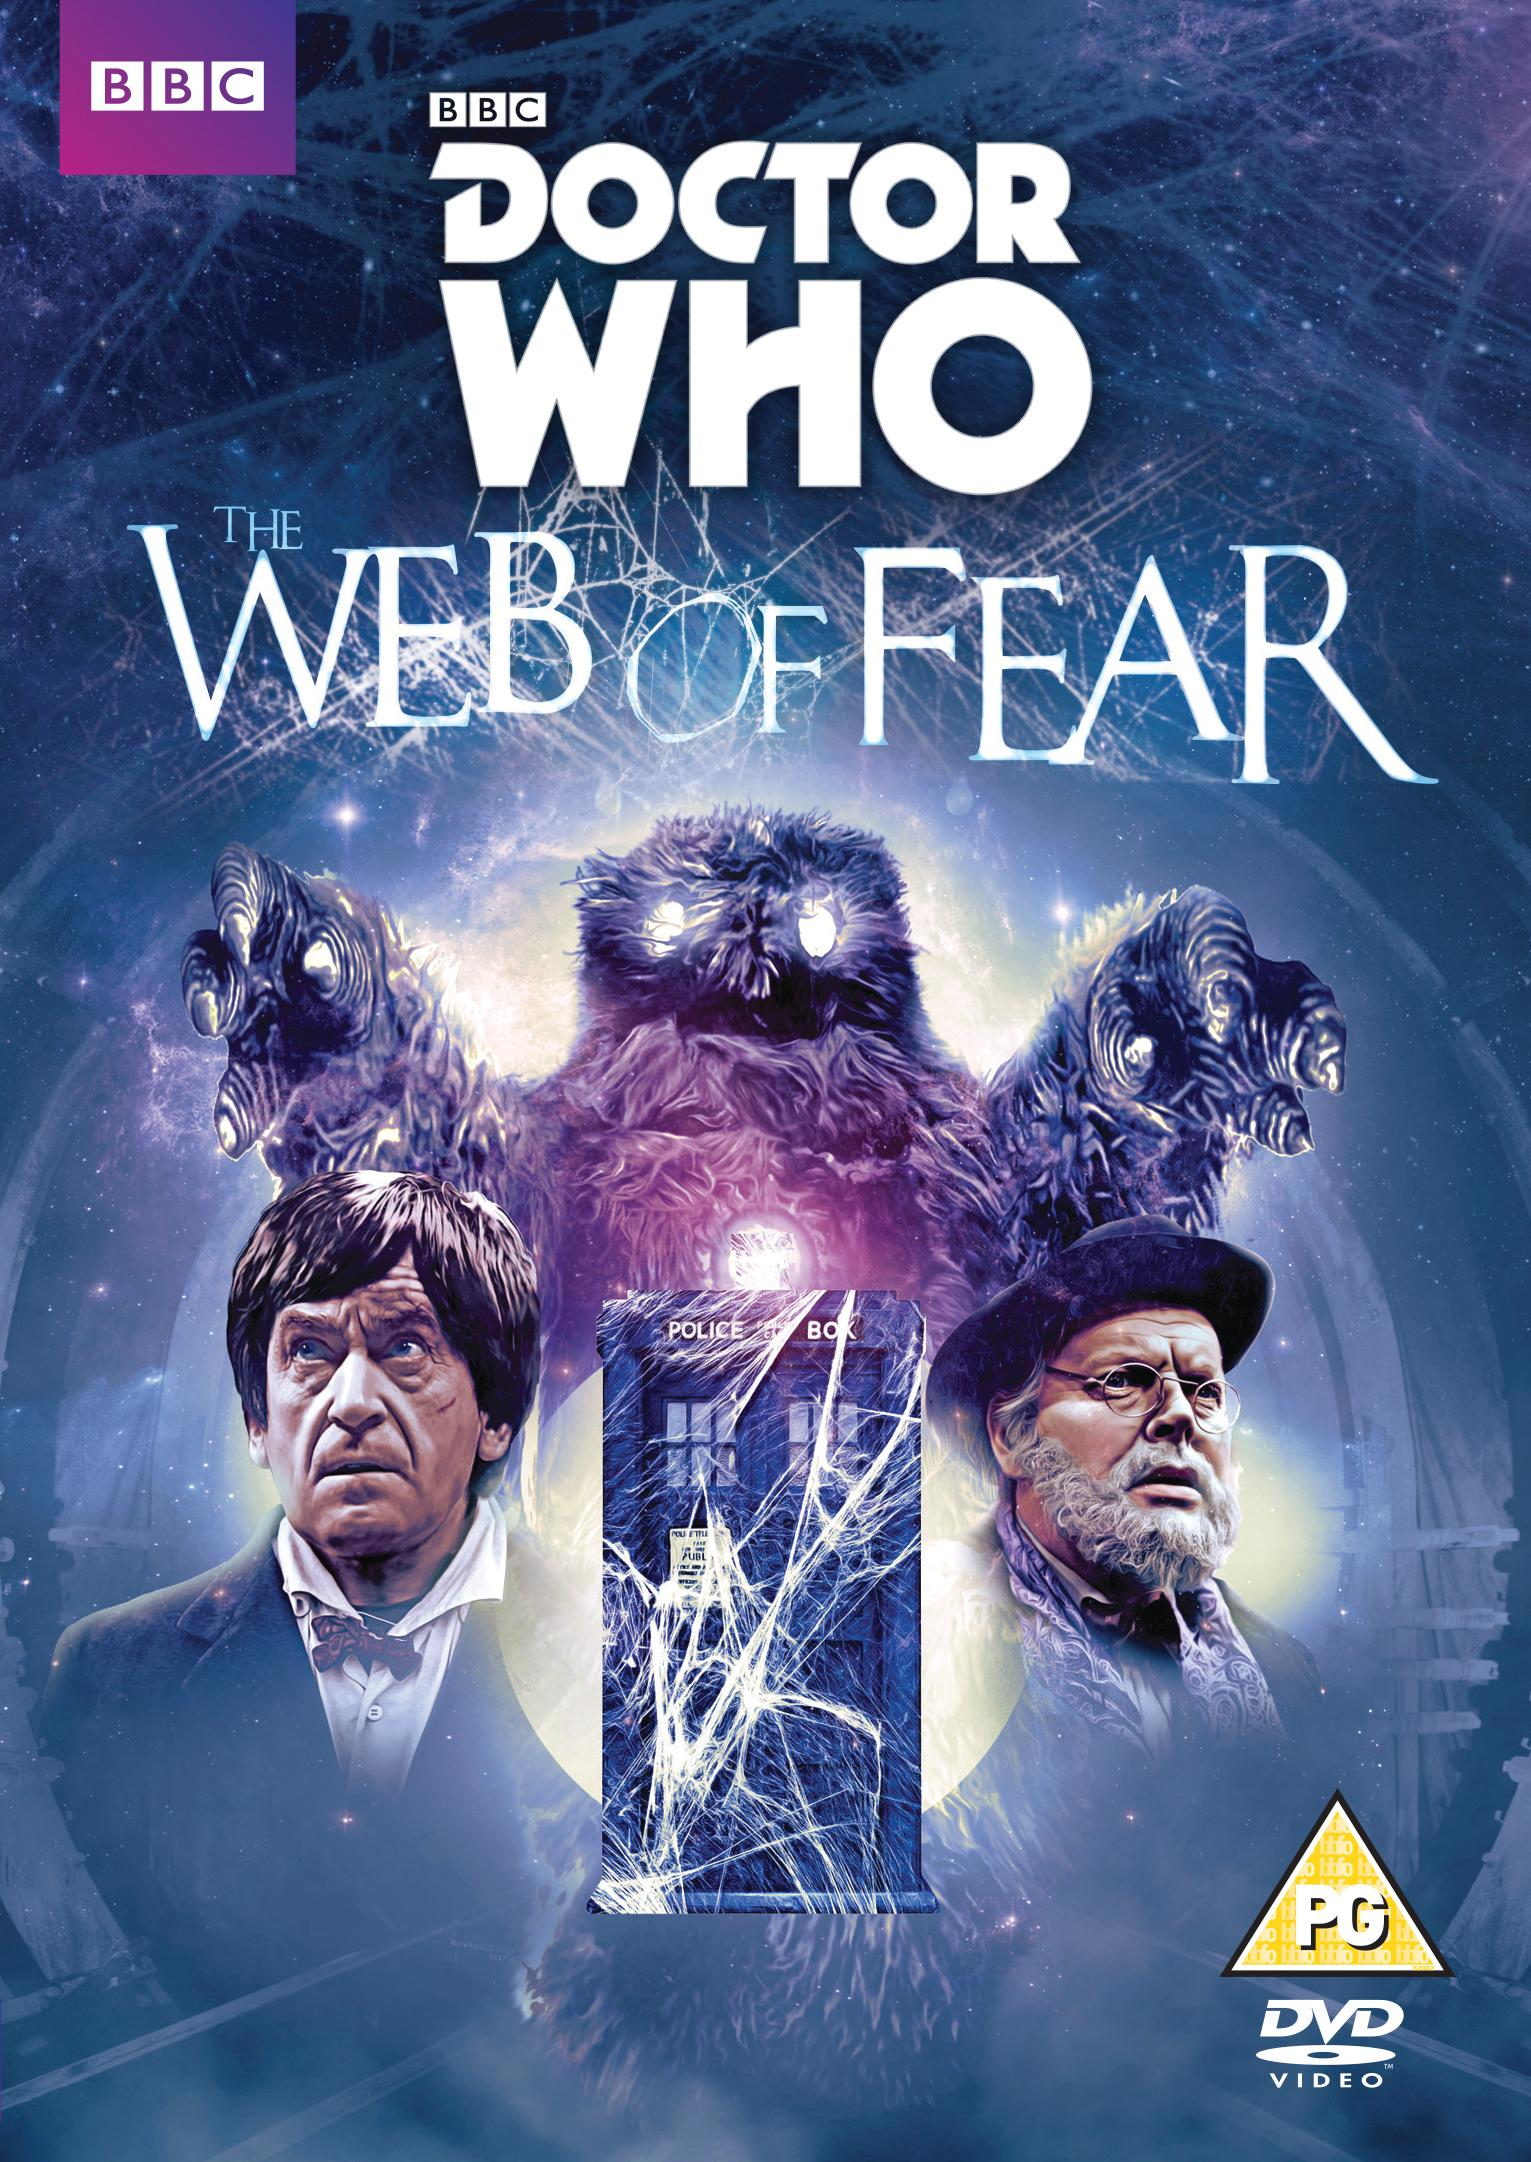 The Web of Fear: R2 cover (Credit: BBC Worldwide